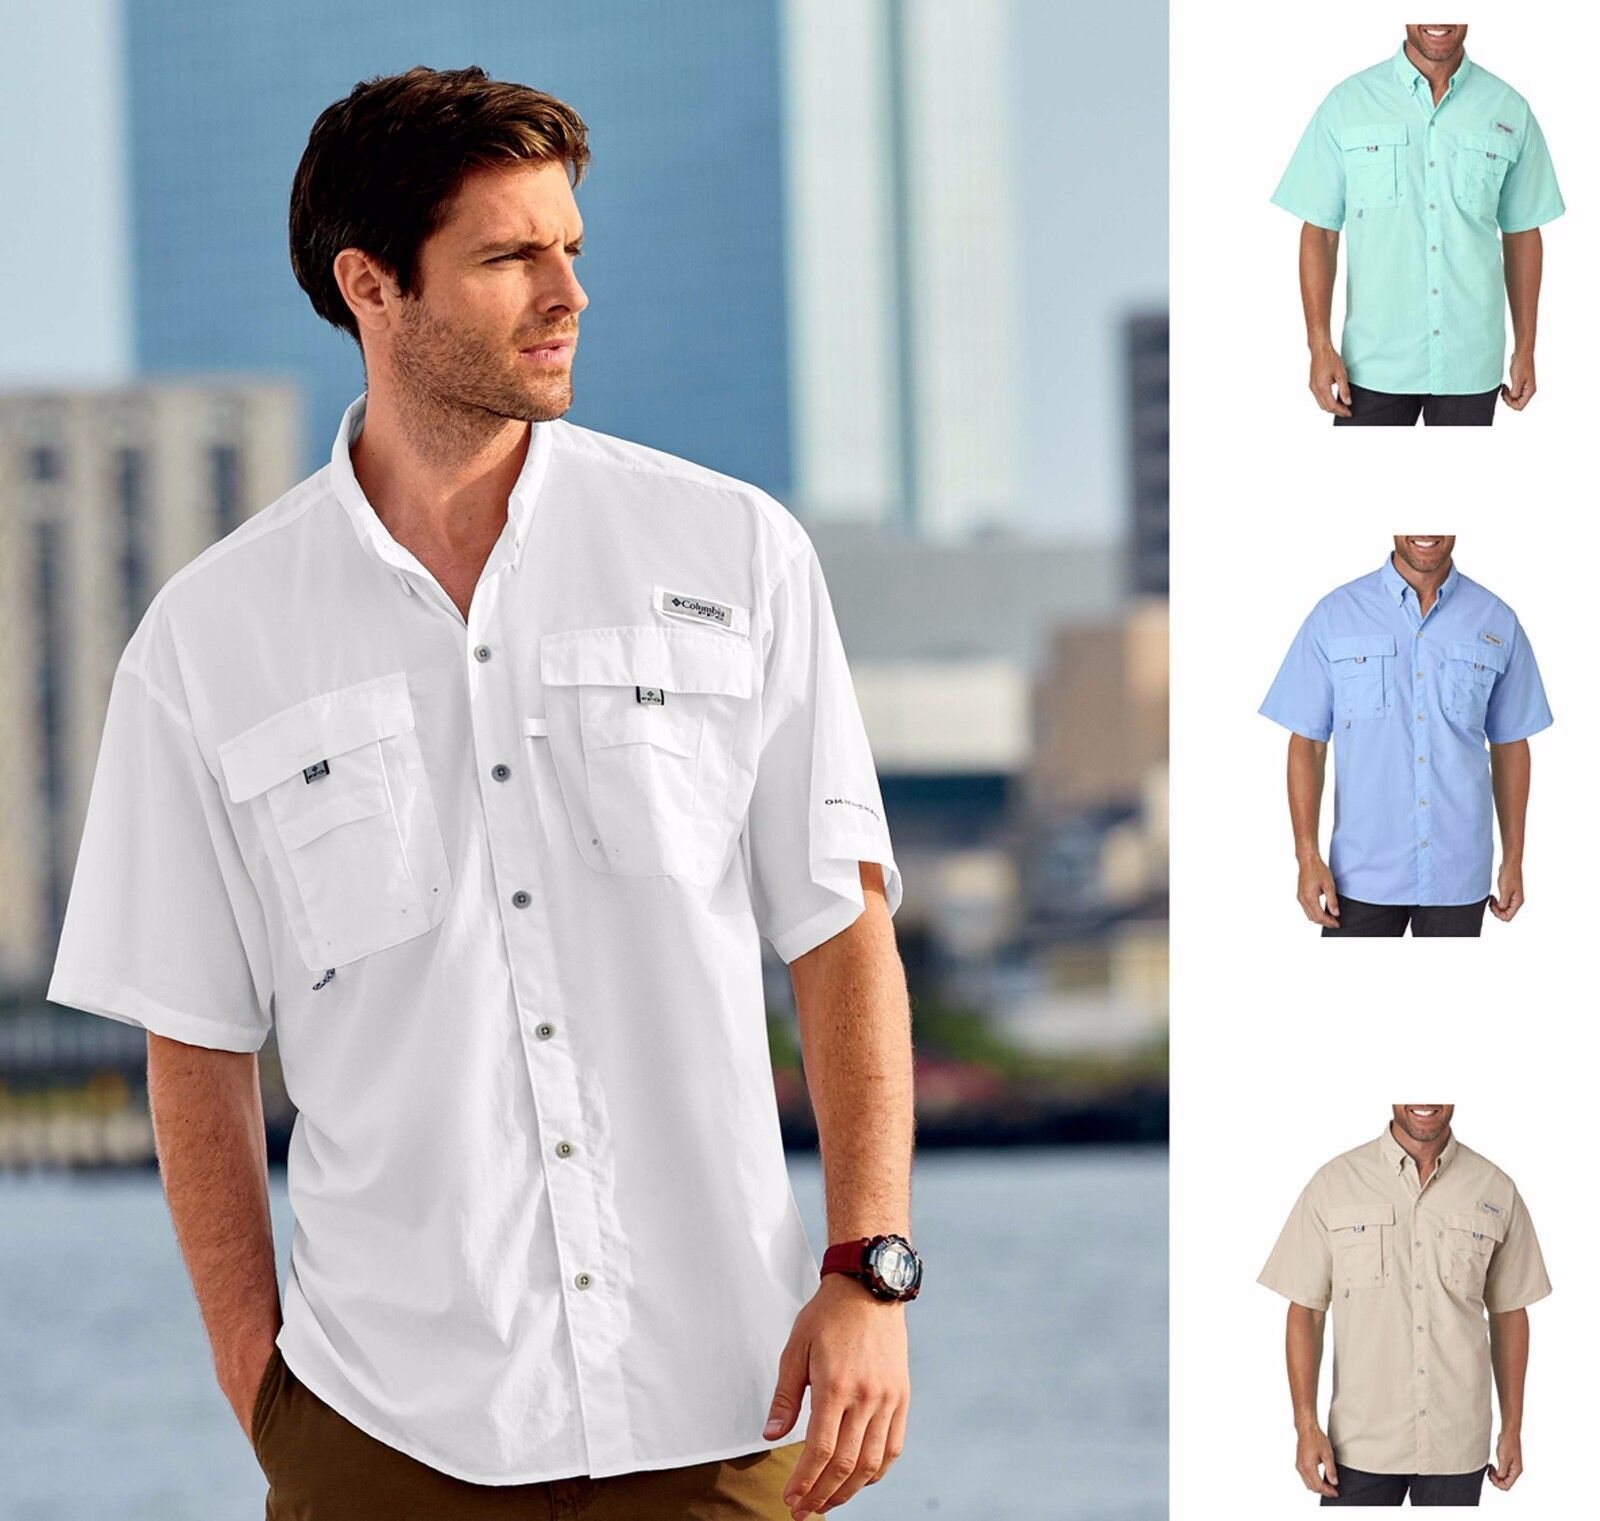 Golf Shirts With Pockets For Men